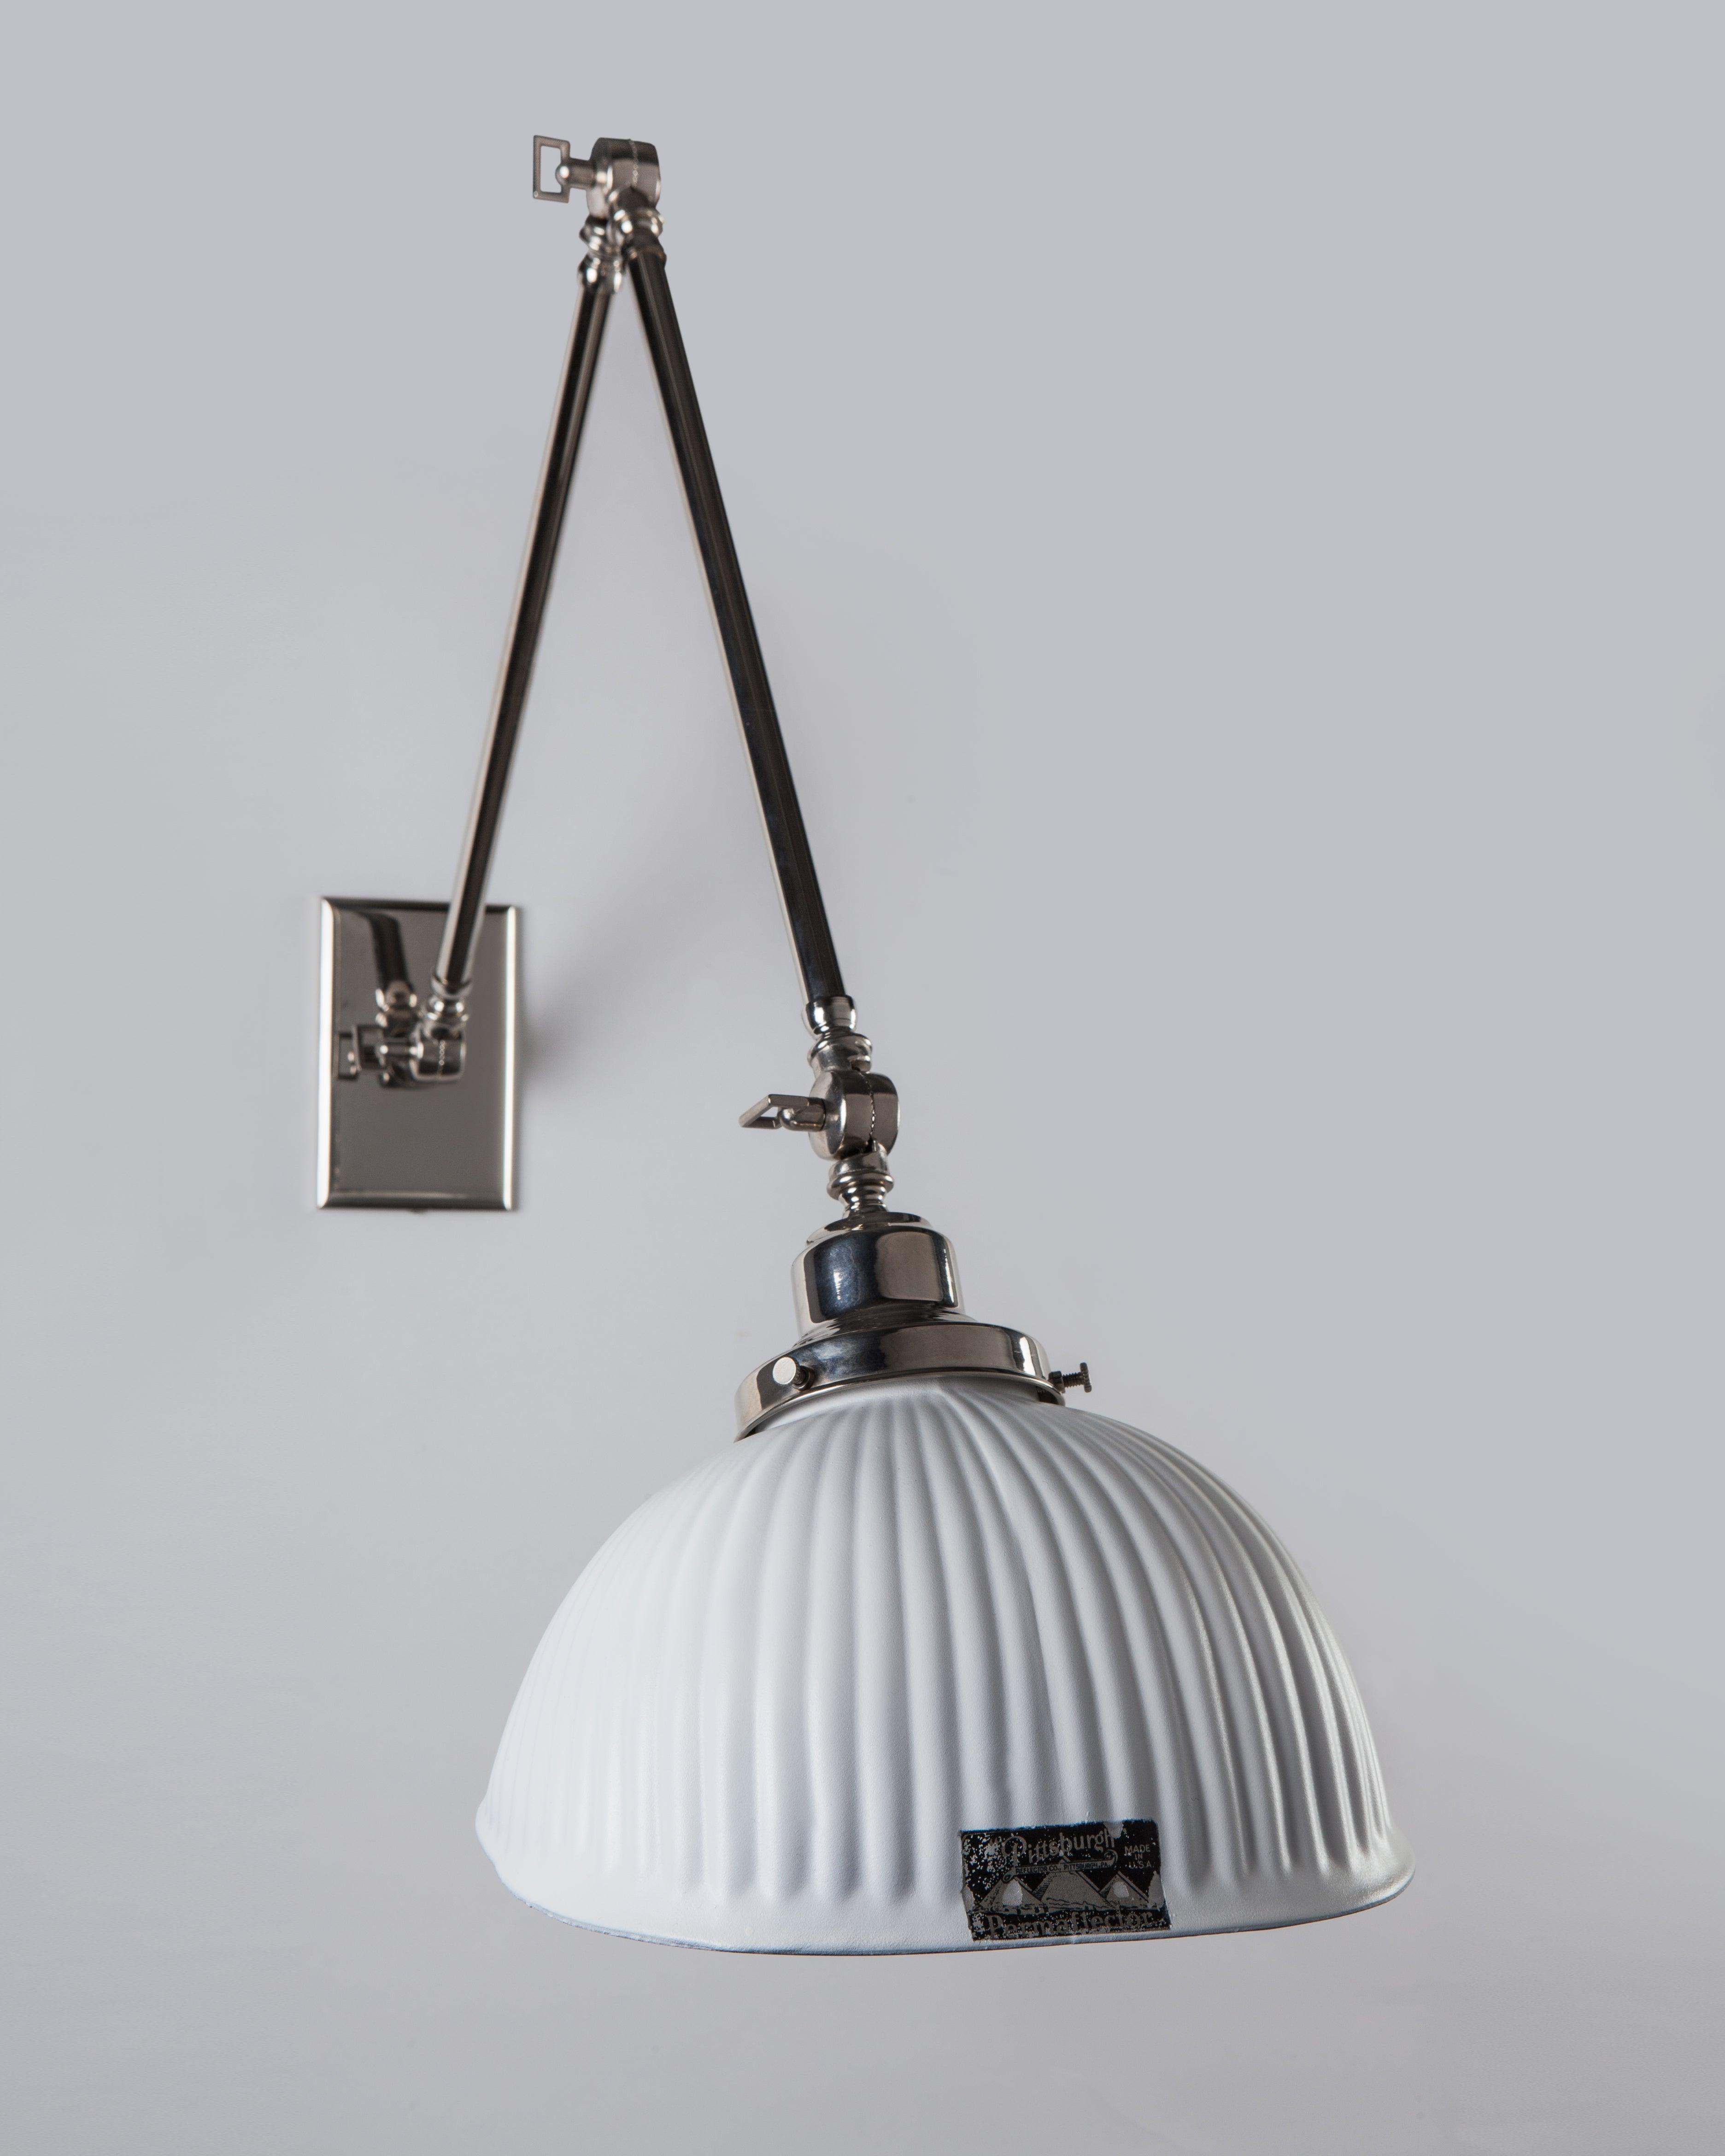 fixtures this glass where one light lane charming style no matter birch polished pin mercury you its globe pendant hang nickel and textured detailing timeless nadia